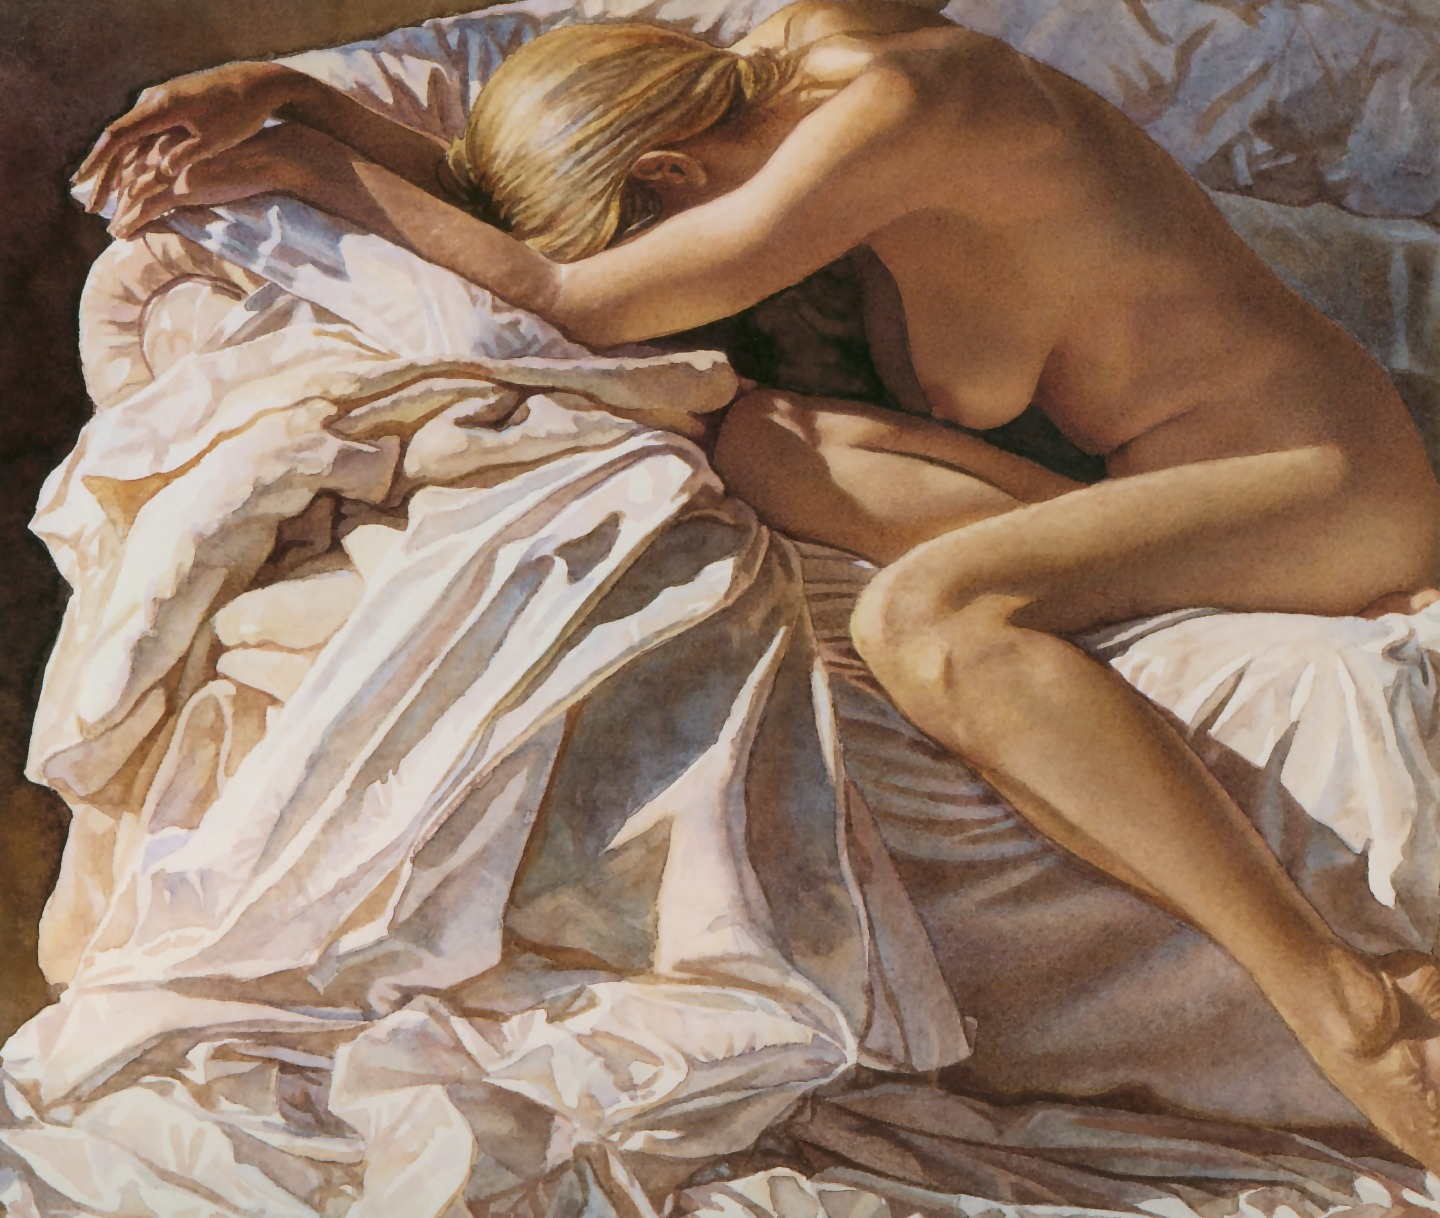 Steve Hanks- Blending into shadows and sheets